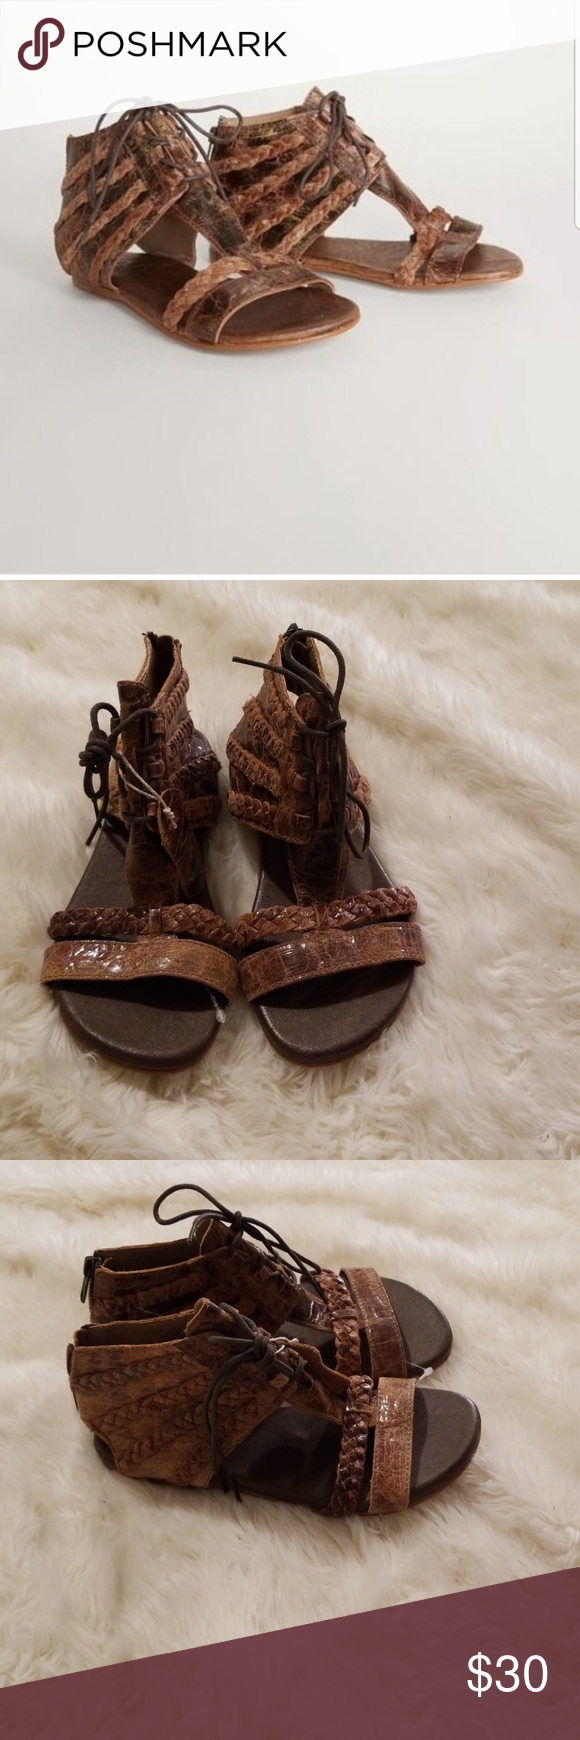 baefeb23667 NWT ROAN POPPY LEATHER SANDALS New and comfortable ROAN Shoes Sandals